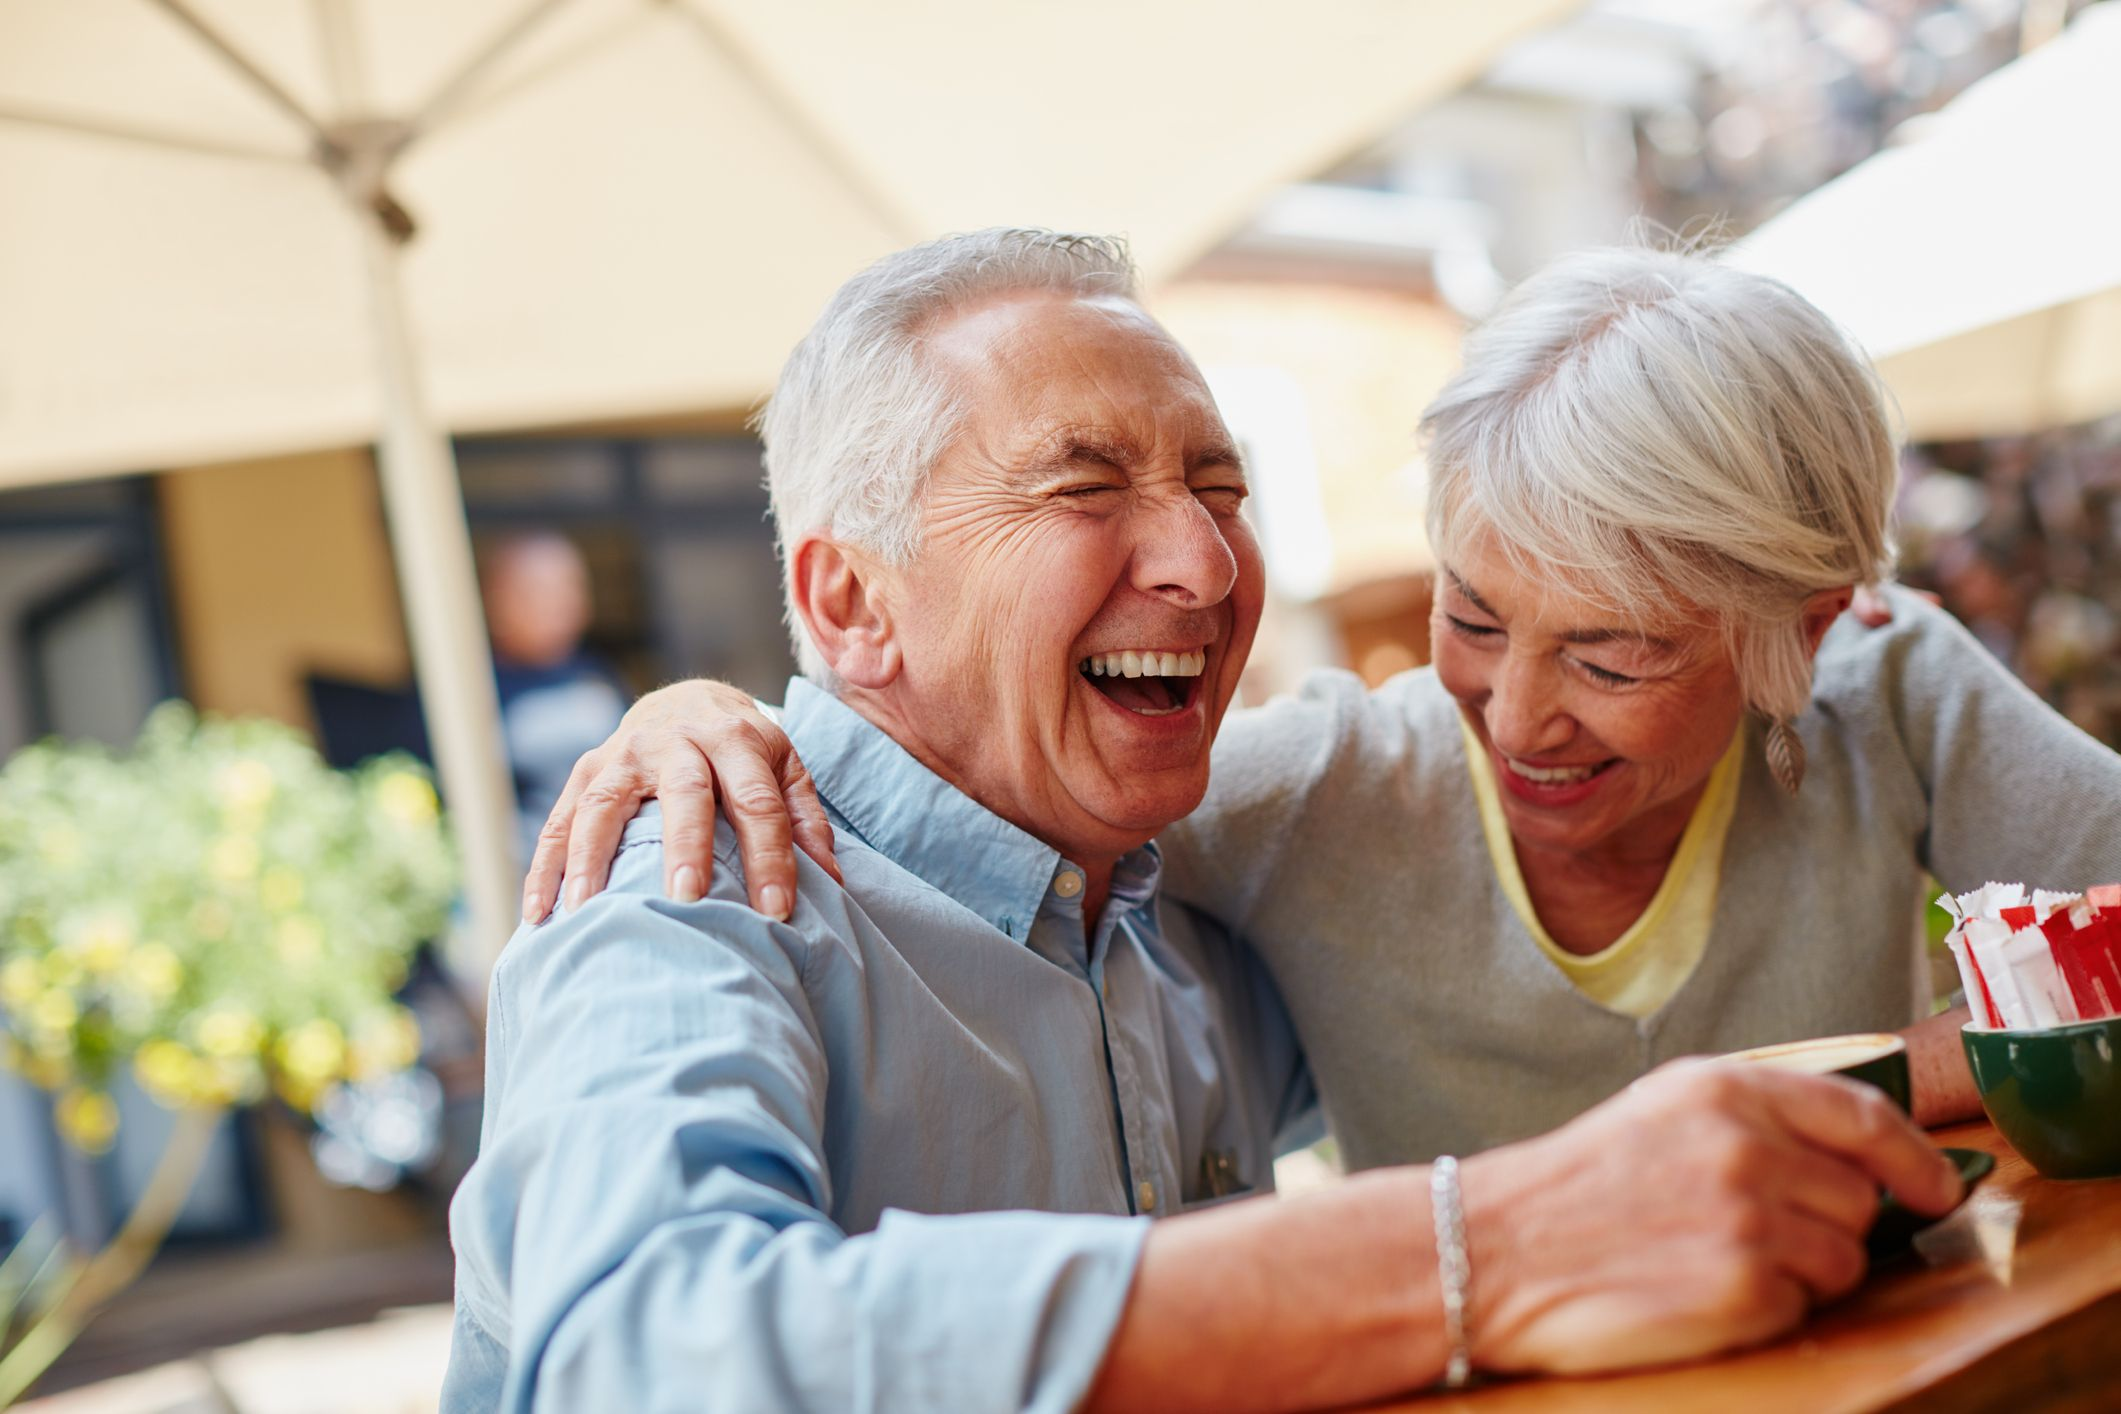 Laughter in relationships builds resiliency